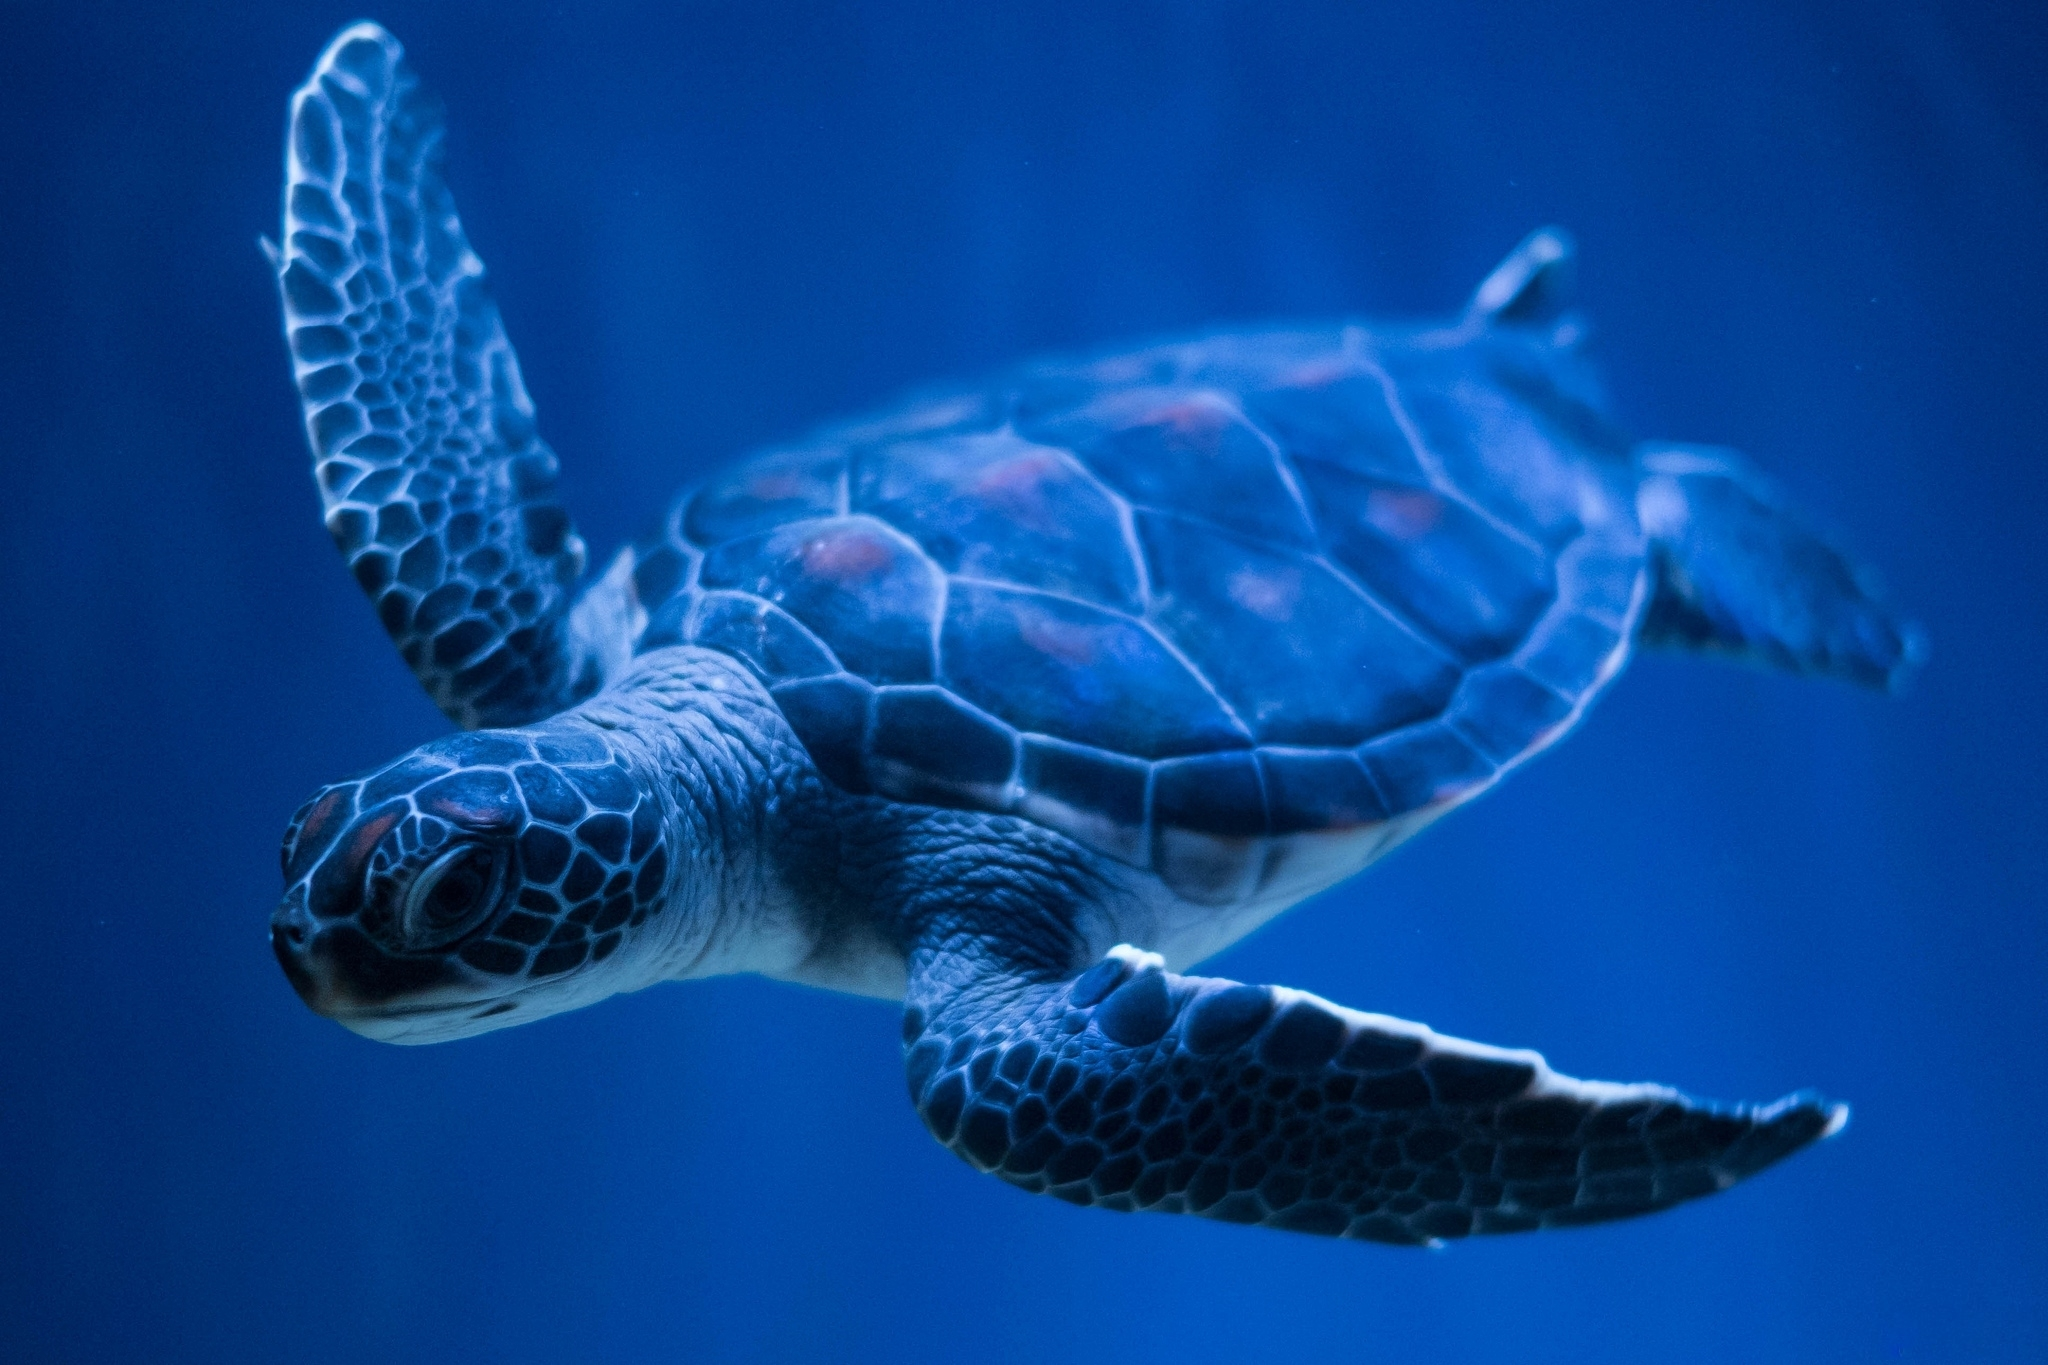 turtle full hd wallpaper and background image 2048x1365